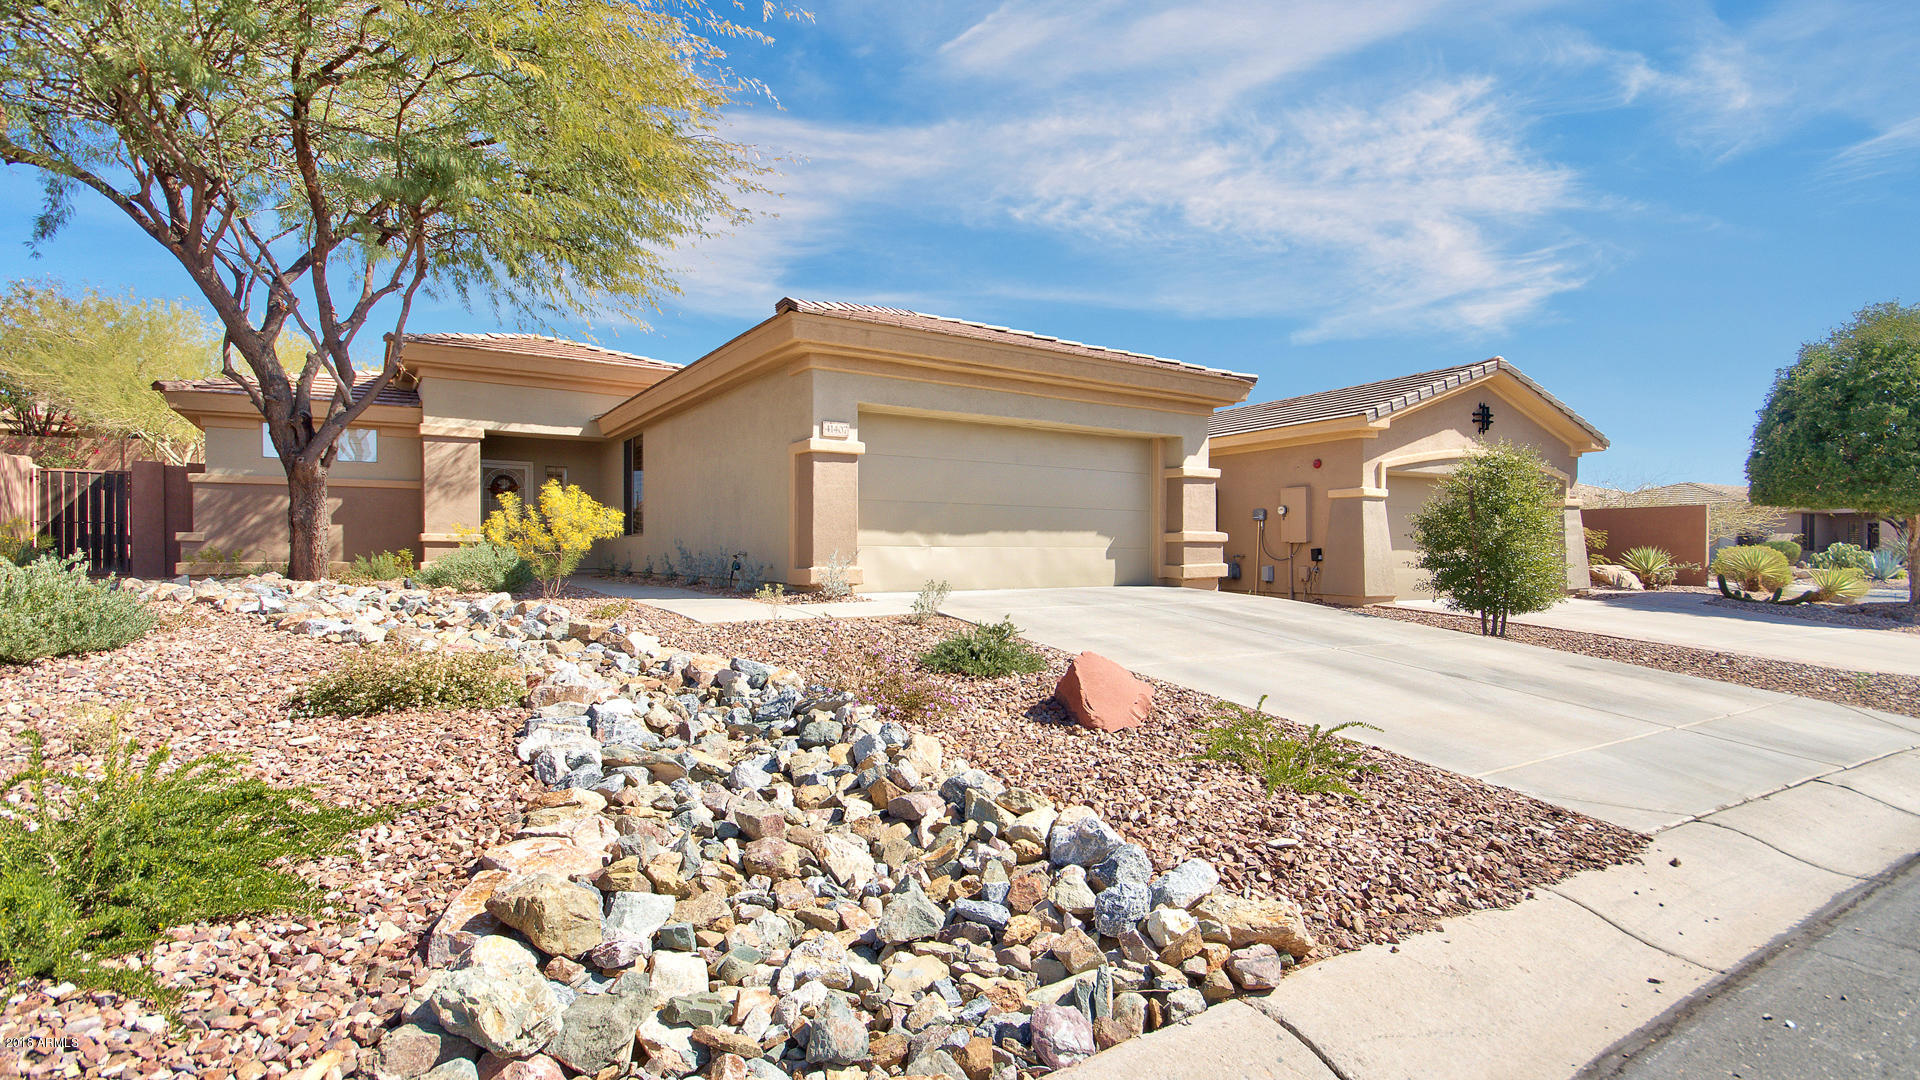 41407 N FAIRGREEN Way, Anthem in Maricopa County, AZ 85086 Home for Sale